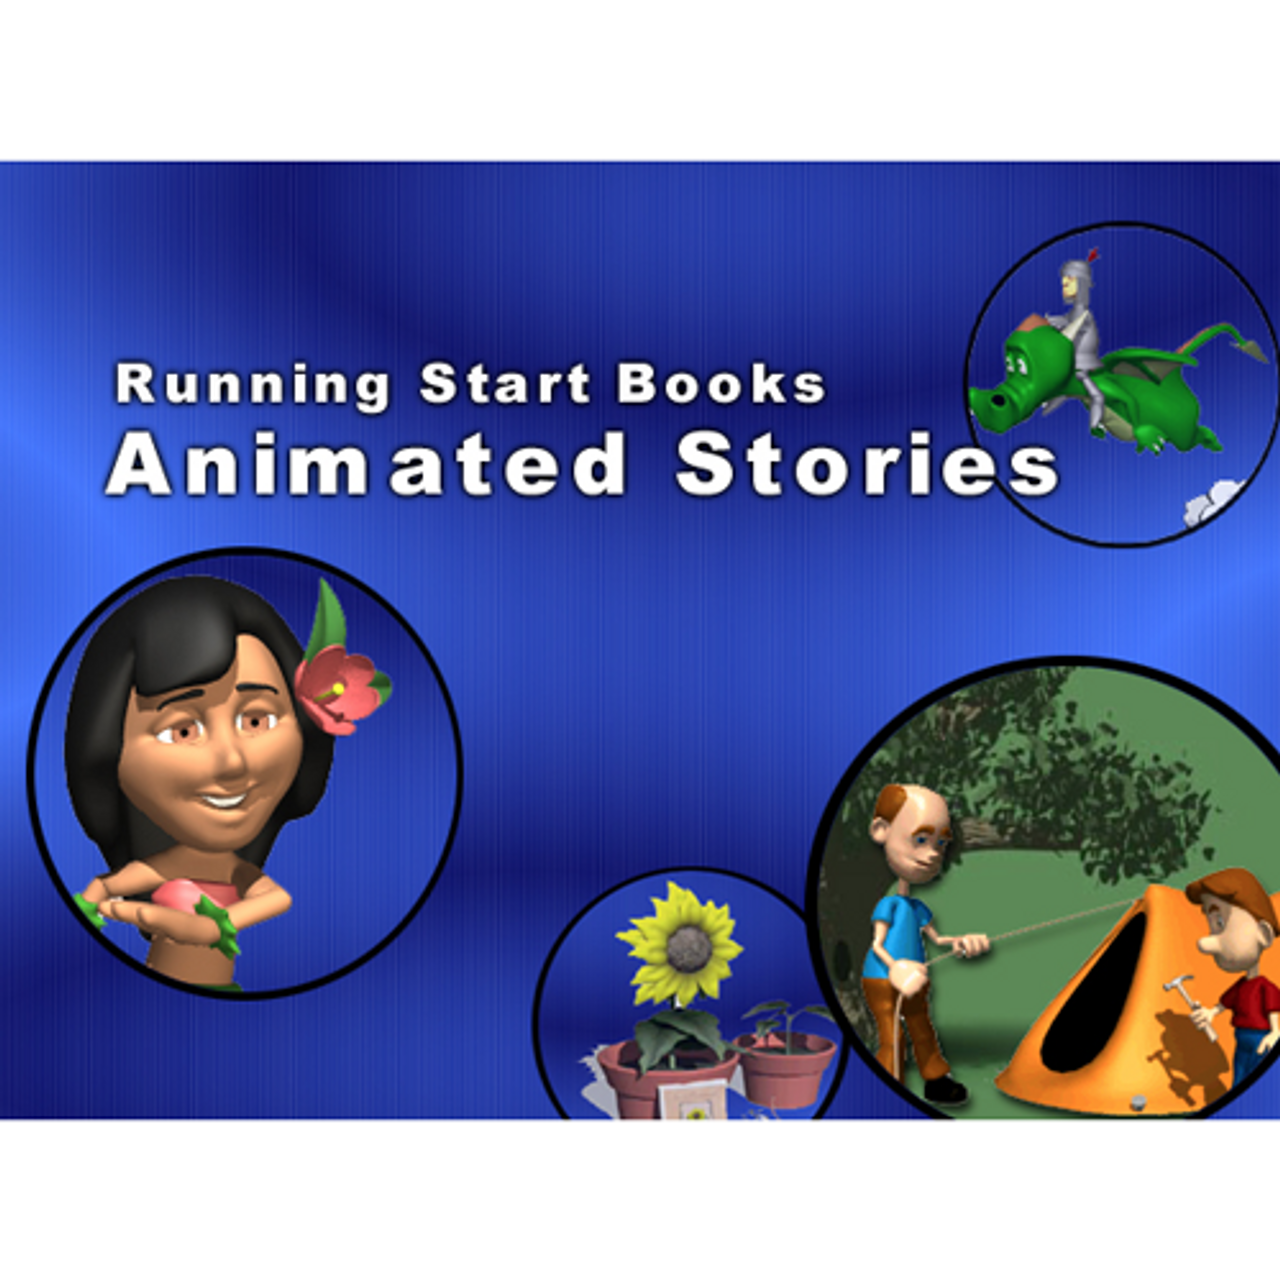 Running Start Books - Animated Stories